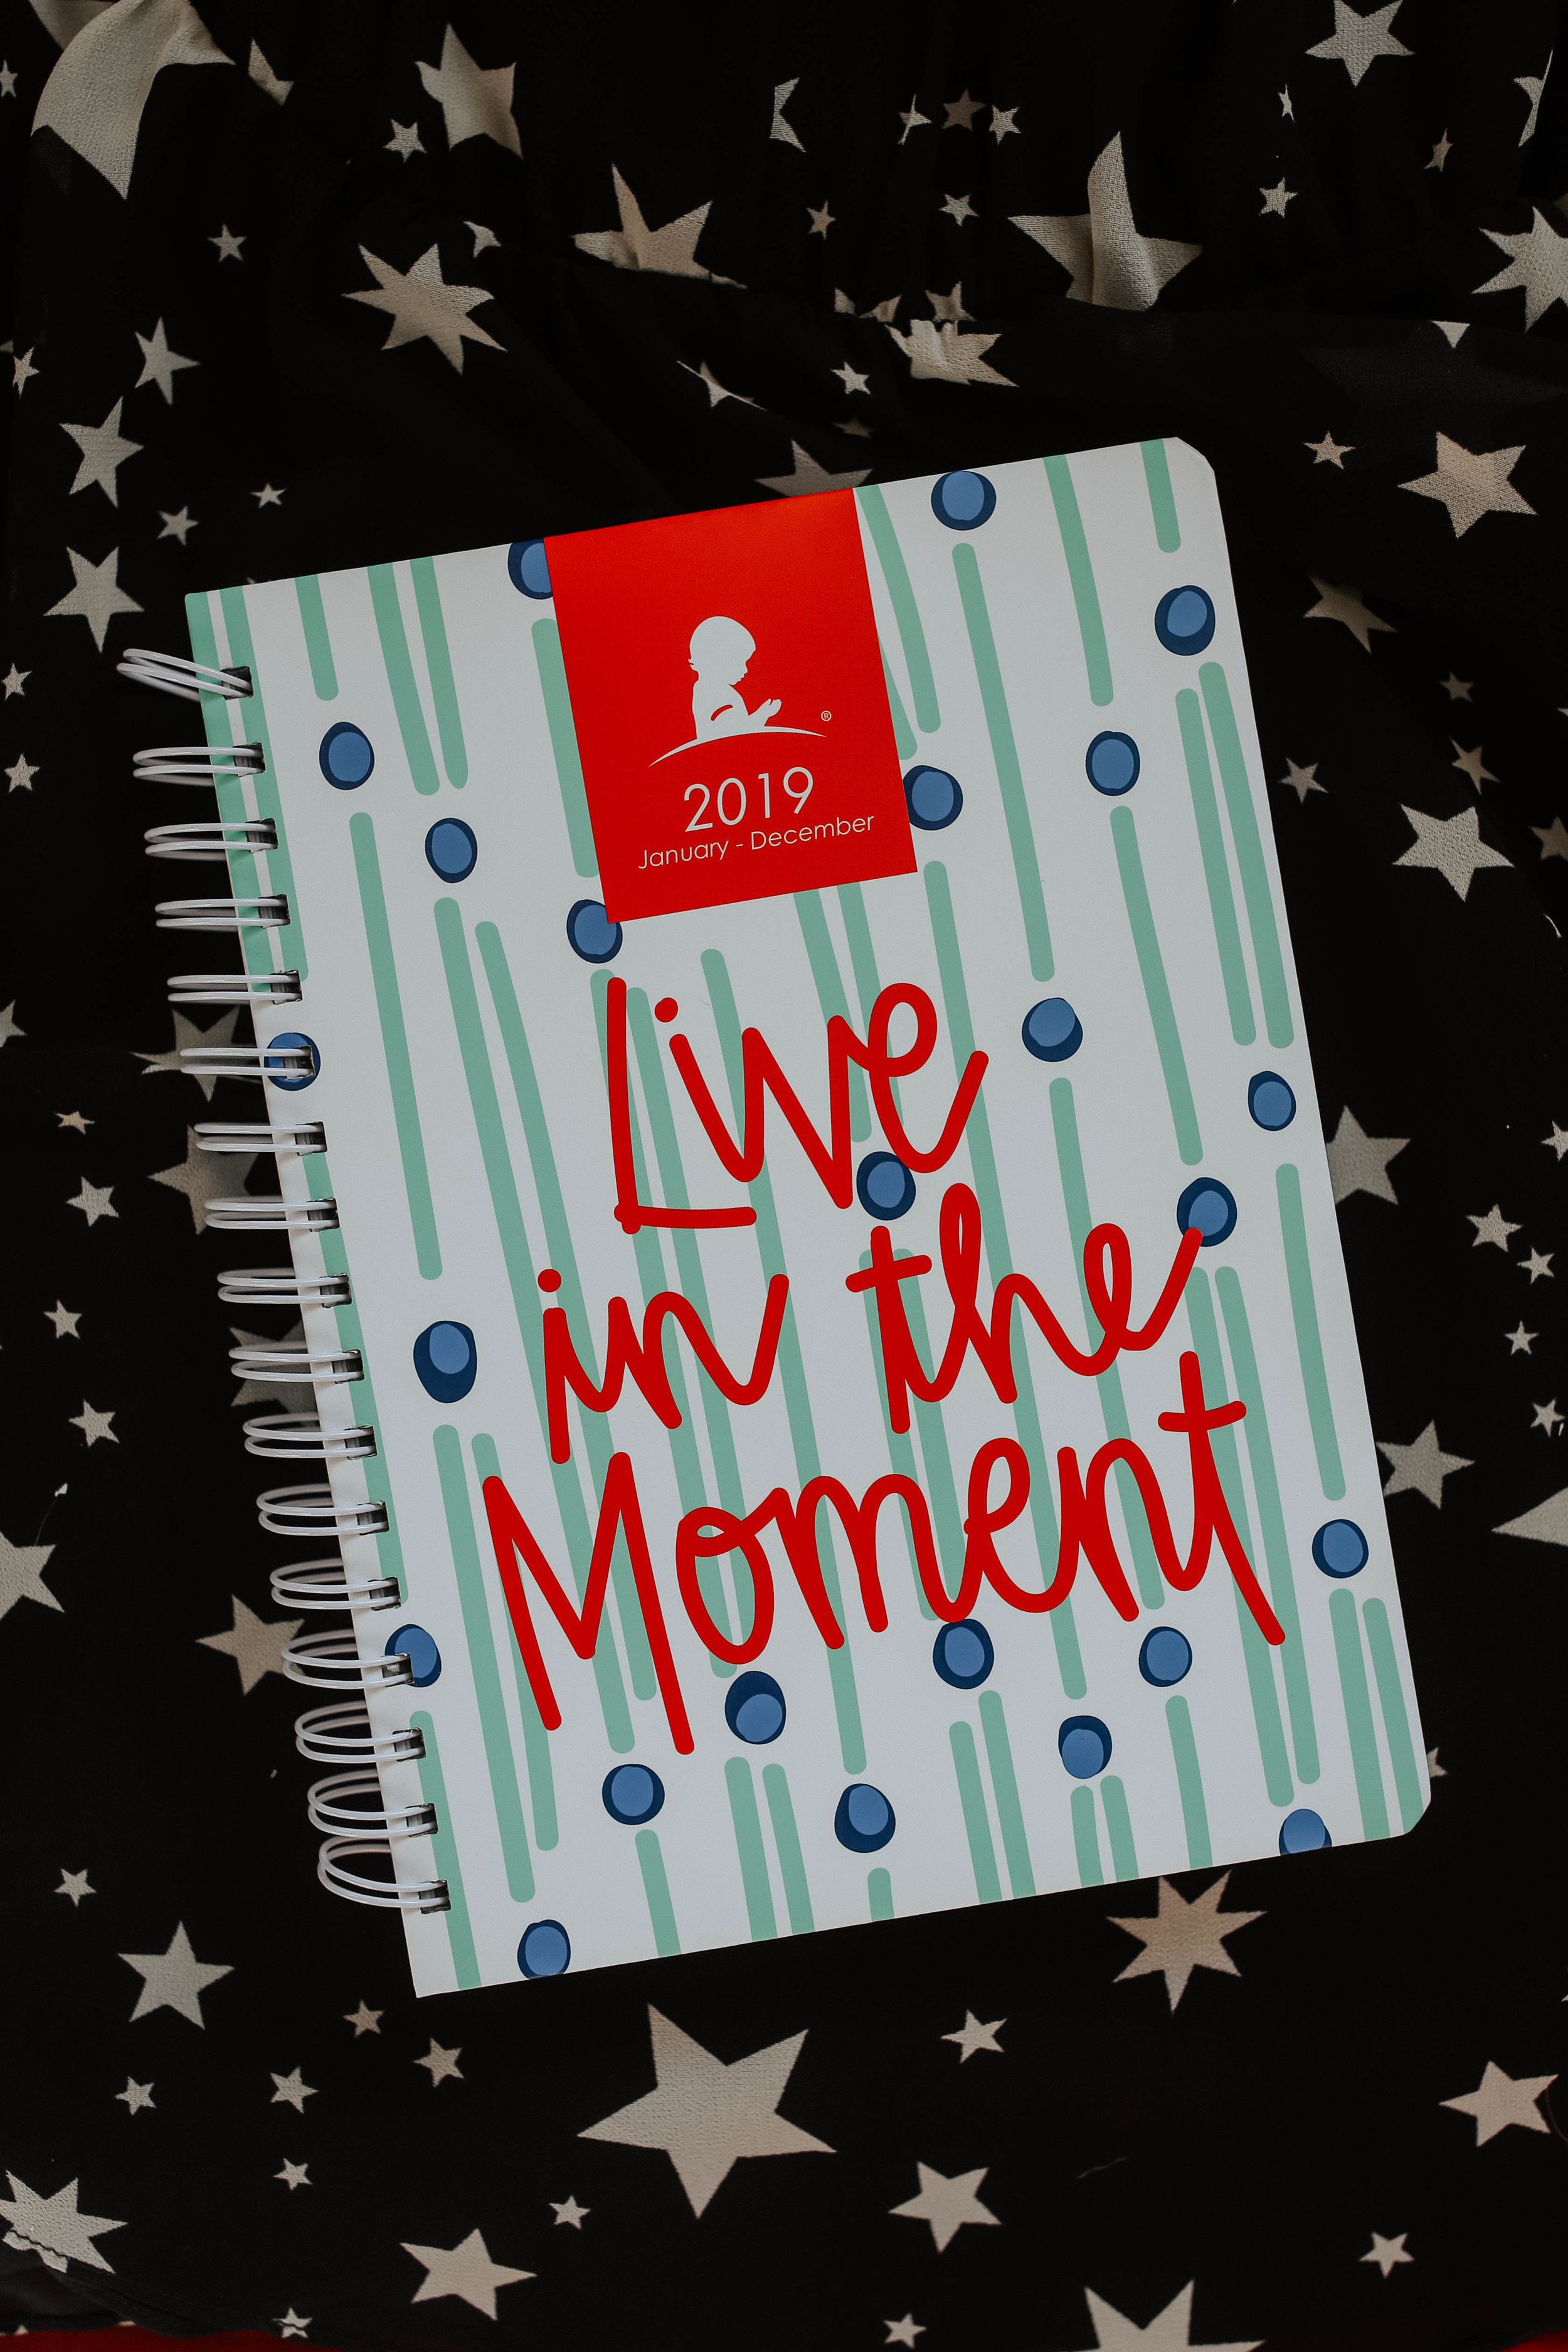 - and because it's a new year, i also got one of their planners and i am so excited to use it because while resolutions are great and important, it's what you do every day that matters. and i think this planner will be more impactful than one that says a generic quote about being busy, ya know?